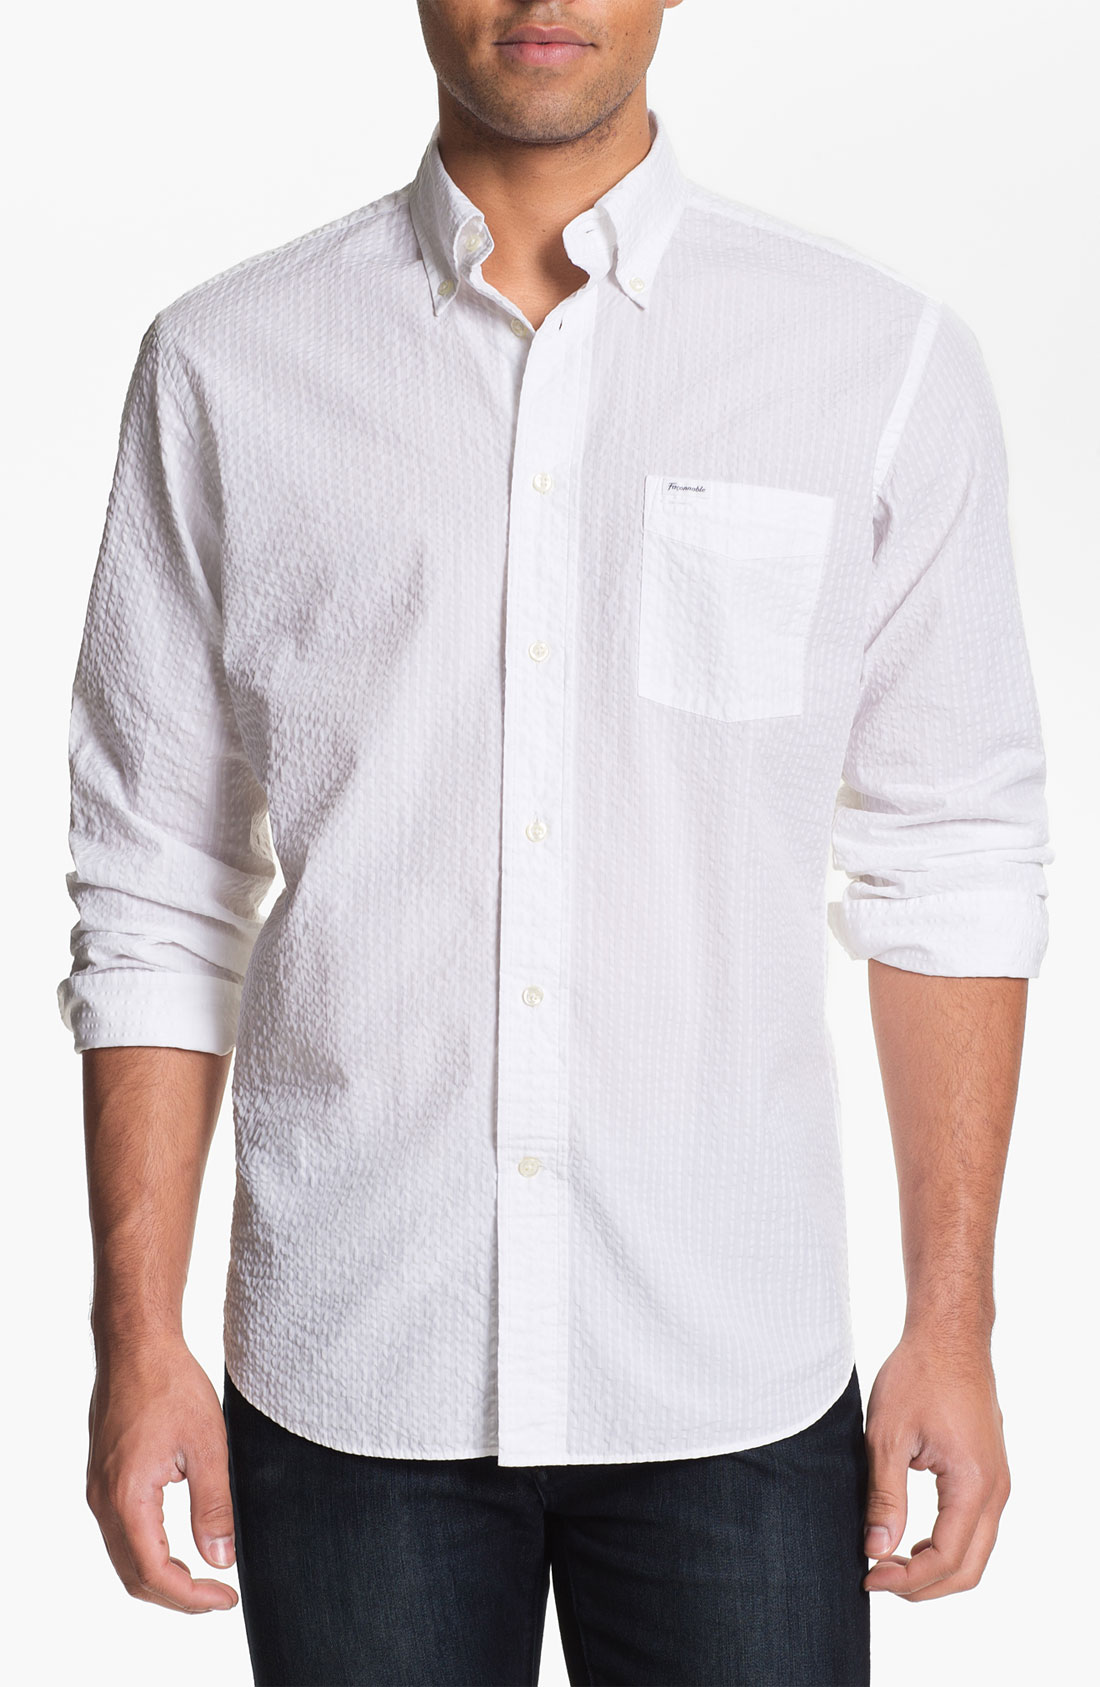 Fa onnable seersucker sport shirt in white for men lyst for Mens seersucker shirts on sale